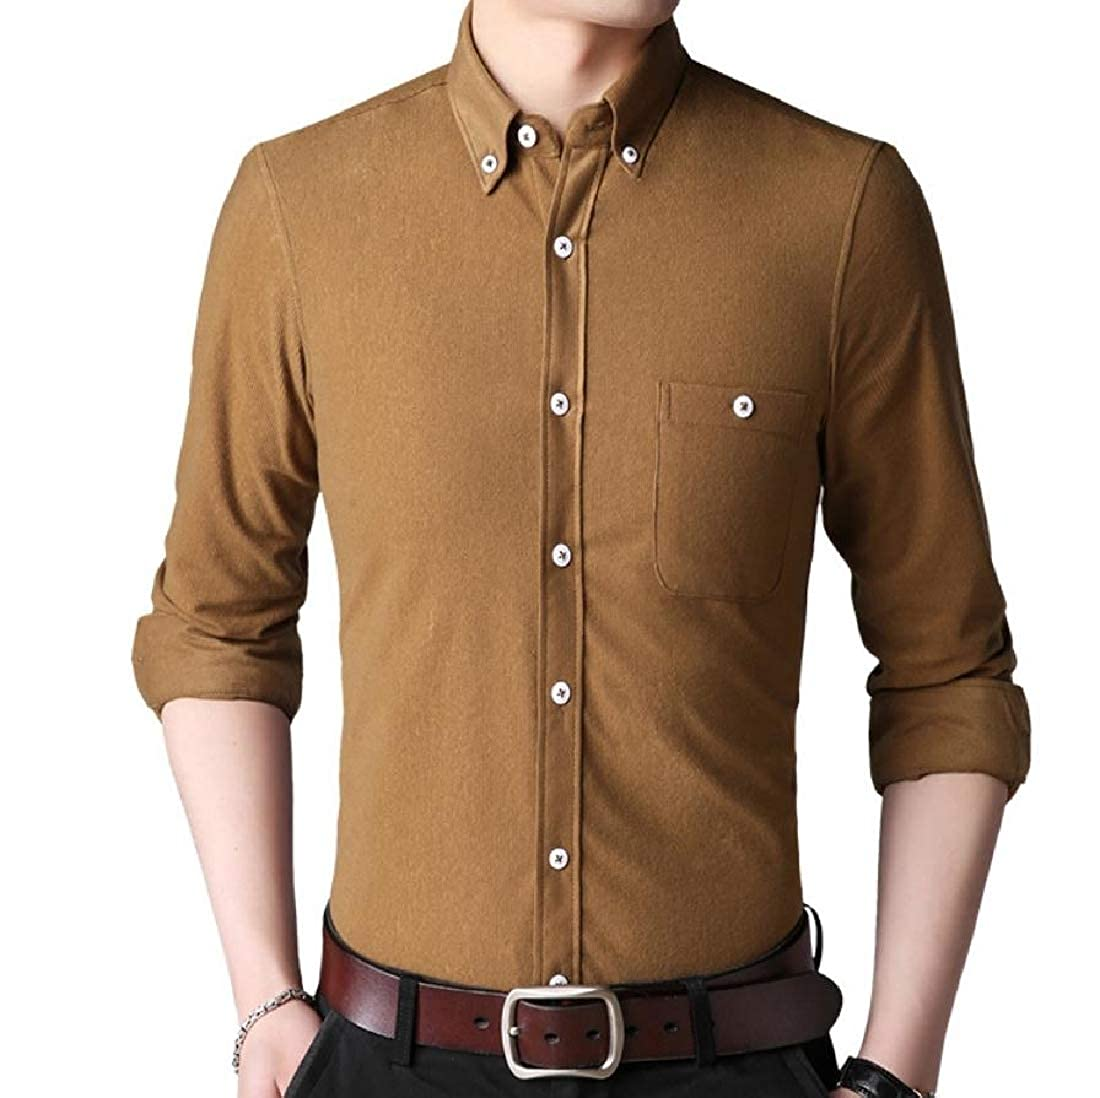 YUNY Mens Corduroy Solid Colored Button-Down-Shirts Plus-Size Shirts Ginger 3XL